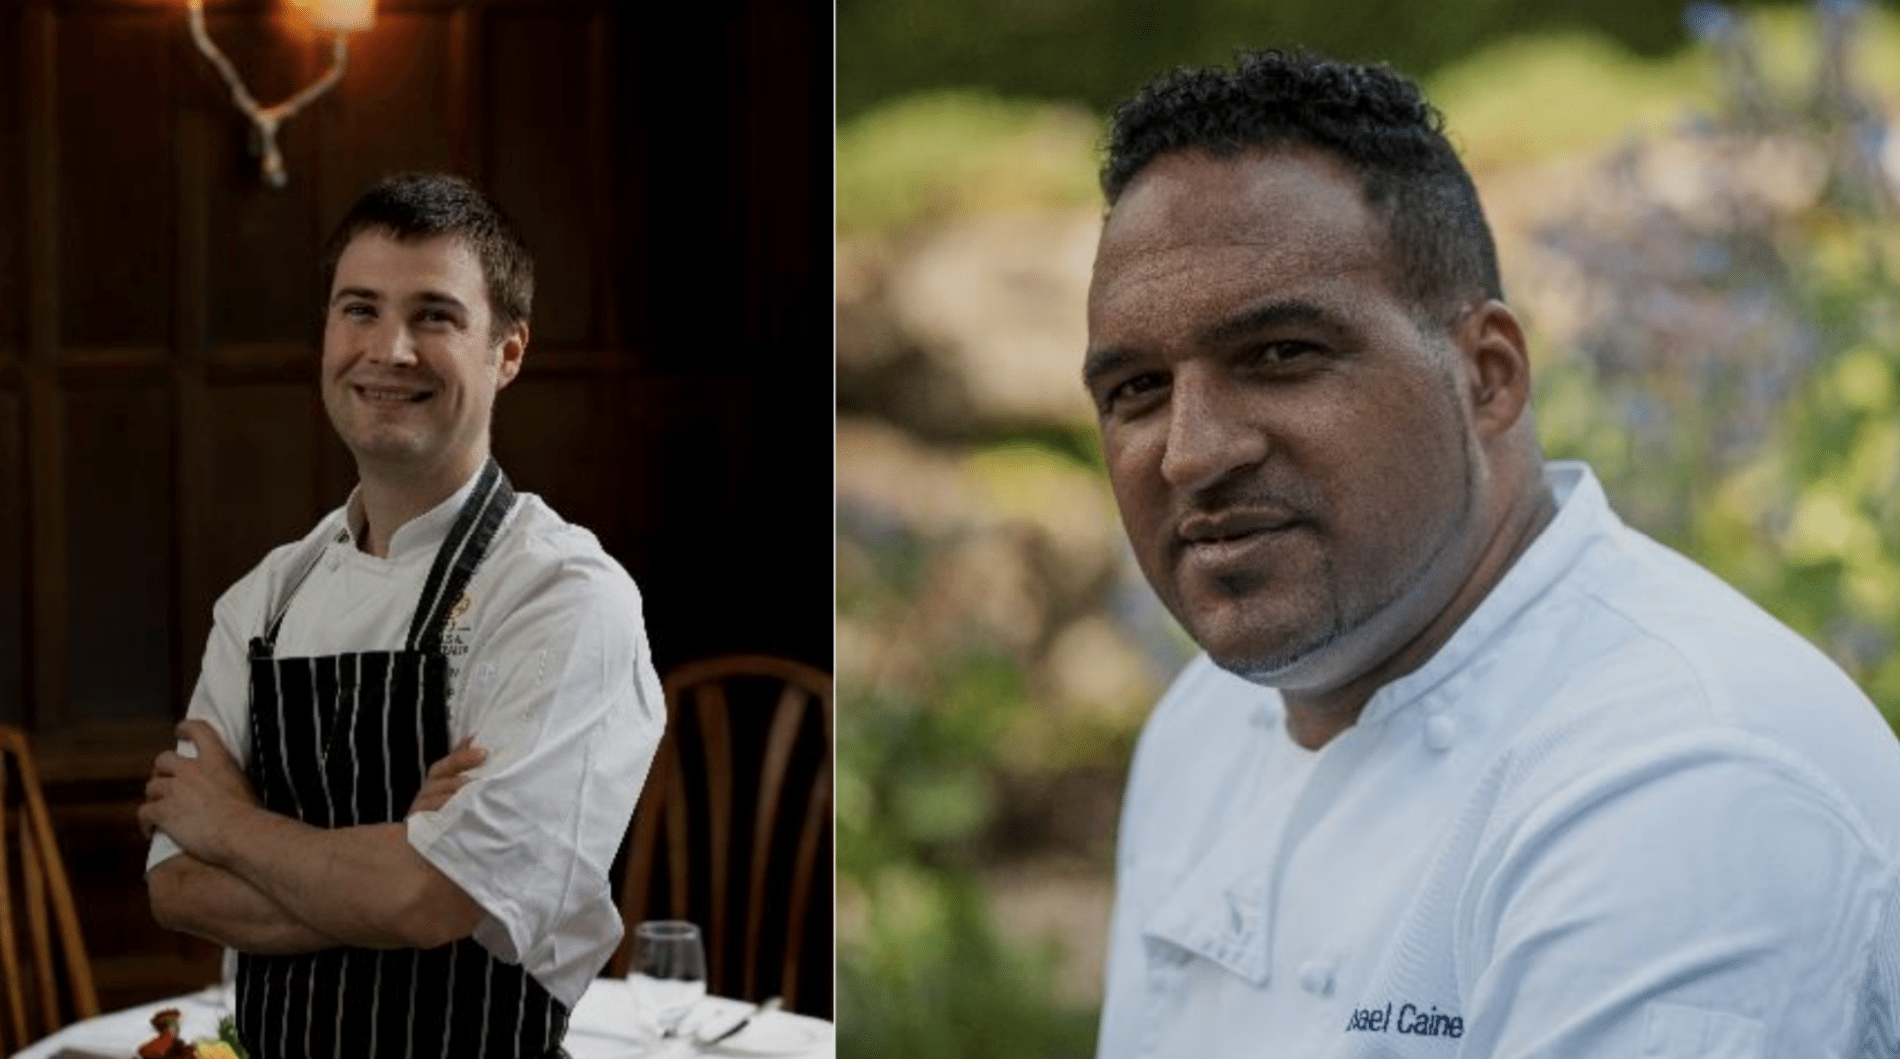 LONGUEVILLE MANOR IN JERSEY LAUNCHES GUEST CHEF SERIES